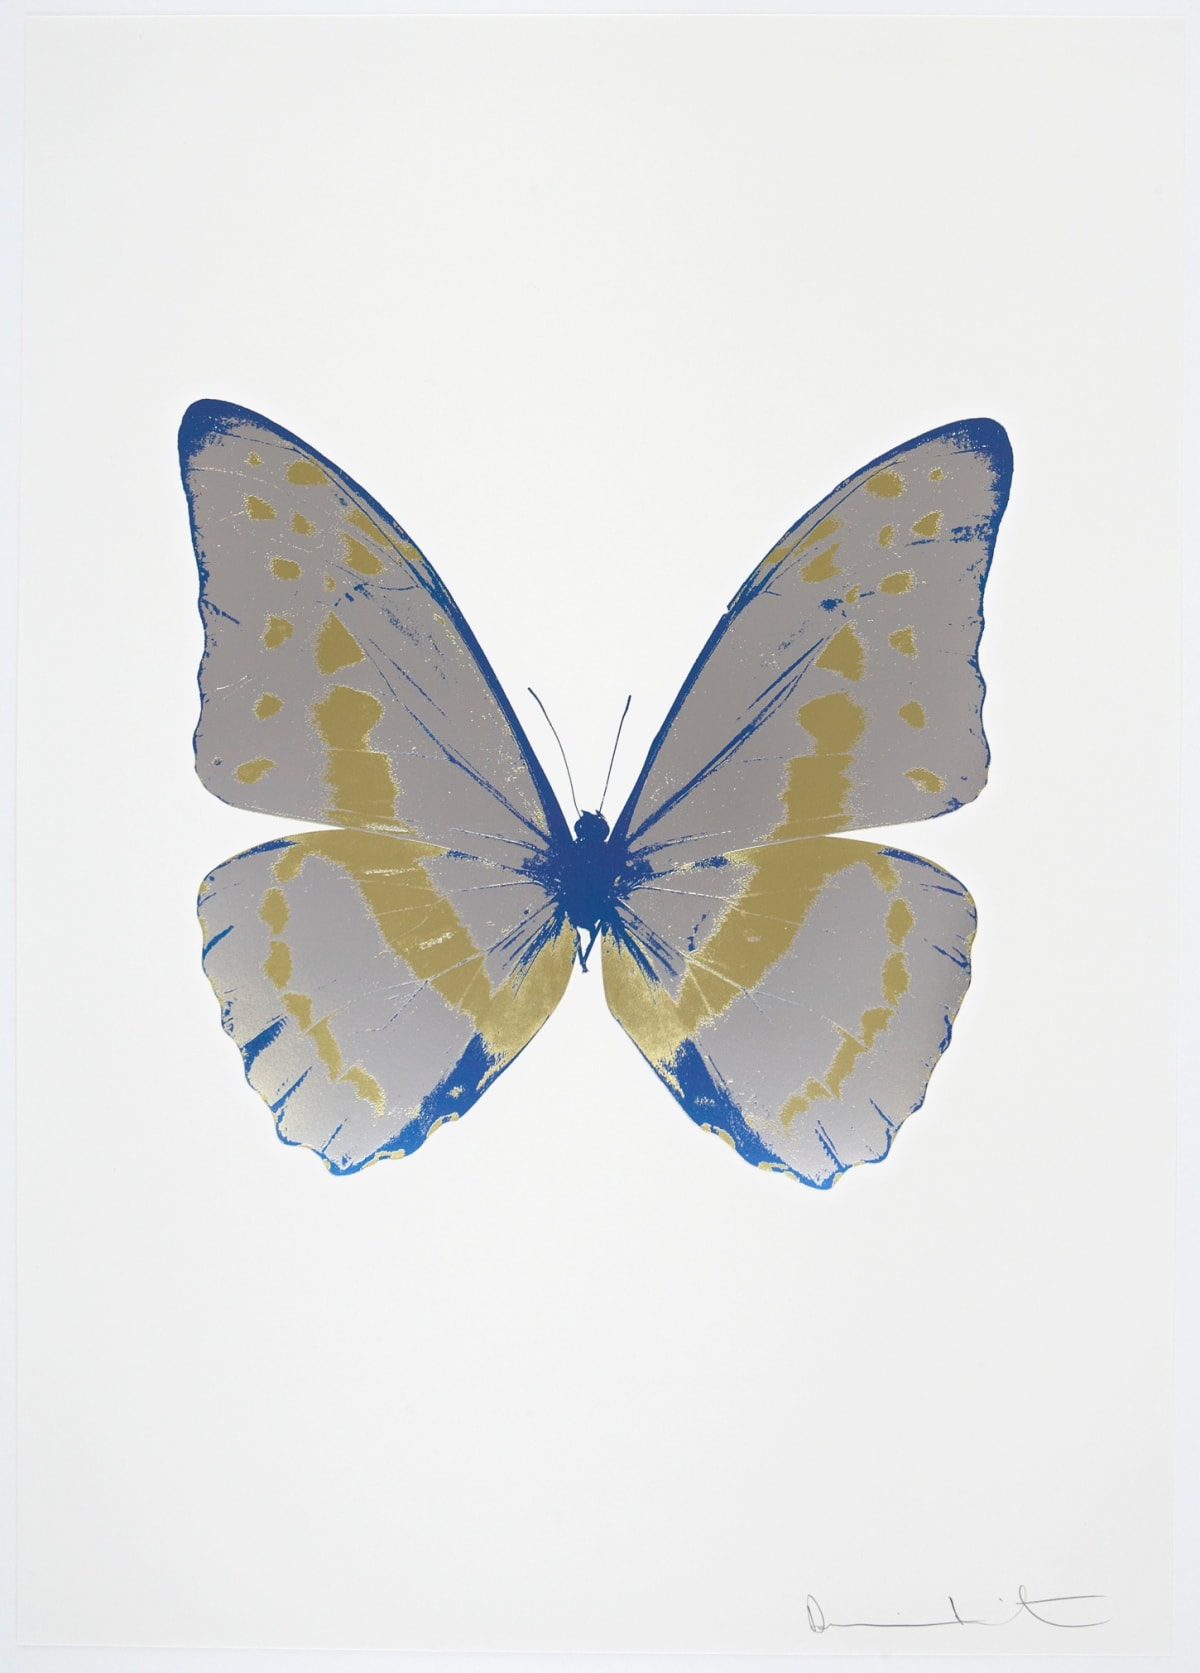 Damien Hirst The Souls III - Silver Gloss/Cool Gold/Frost Blue, 2010 3 colour foil block on 300gsm Arches 88 archival paper. Signed and numbered. Published by Paul Stolper and Other Criteria 72 x 51cm OC7951 / 660-54 Edition of 15